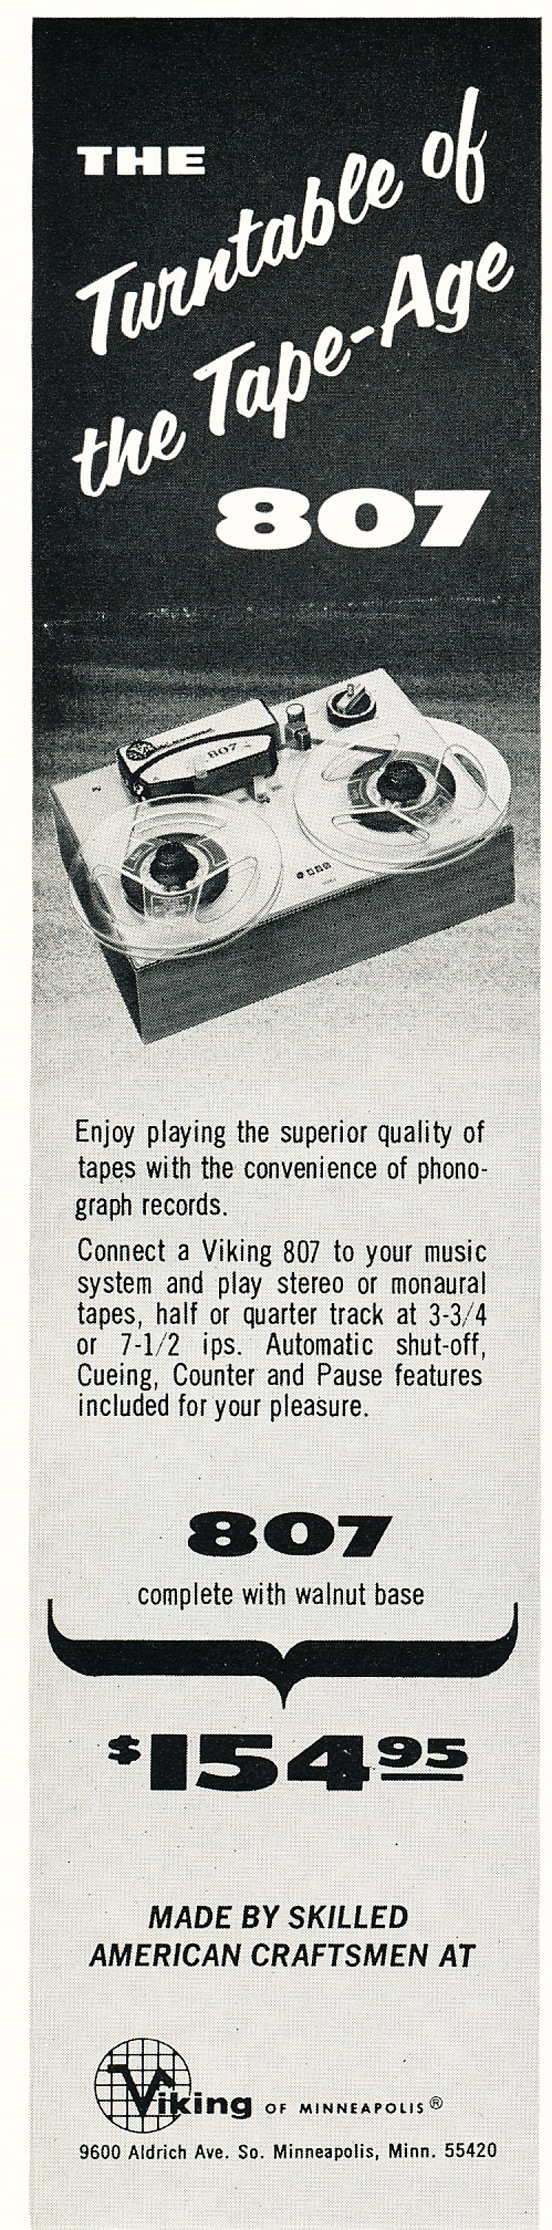 1966 ad for the Viking 807 reel to reel tape recorder in Reel2ReelTexas.com's vintage recording collection